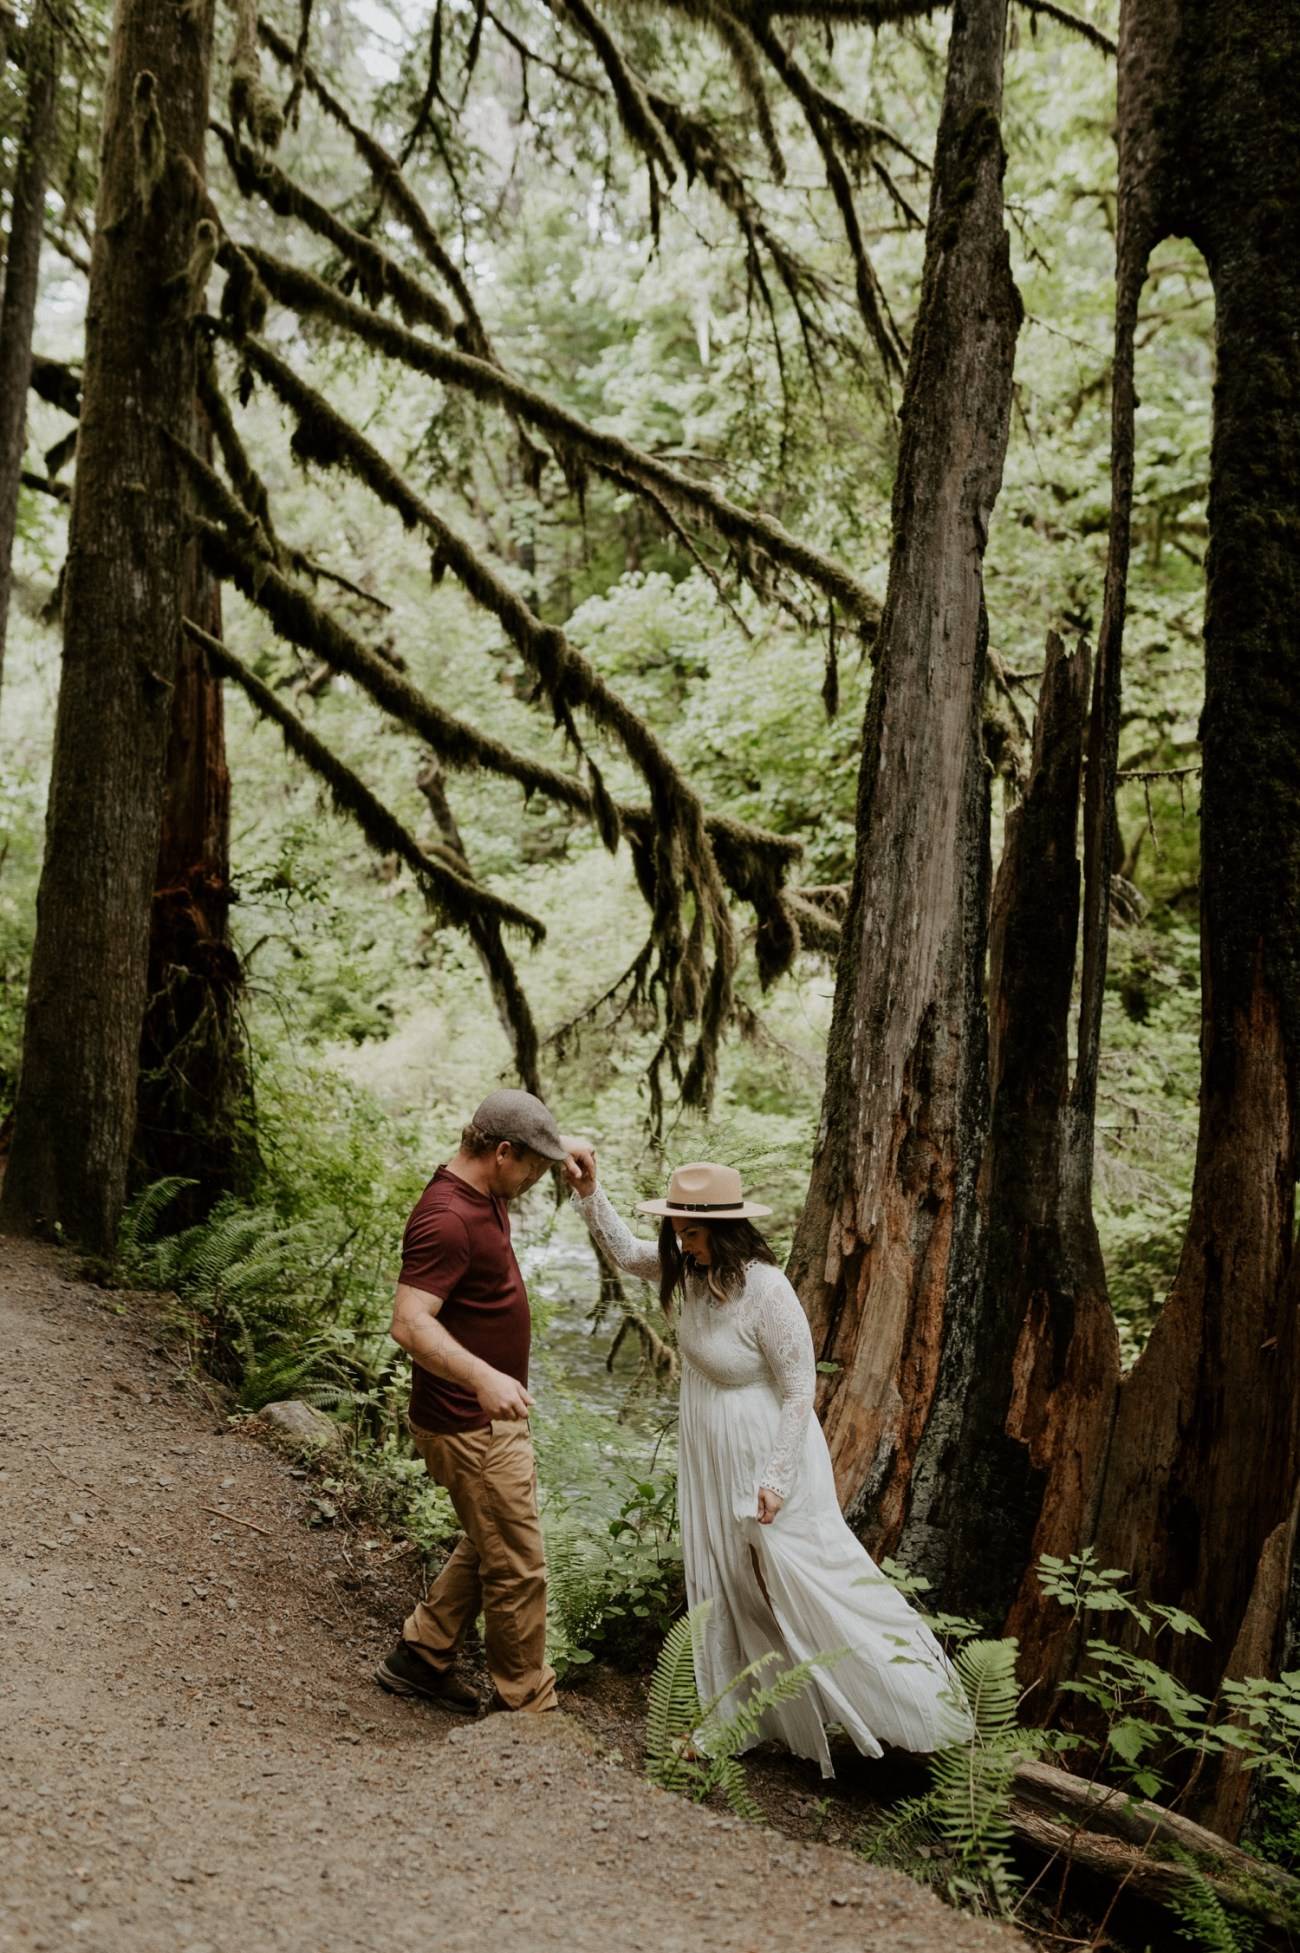 Silver Falls State Park Engagement Session North Falls Engagement Photos Portland Wedding Photographer Oregon Elopement Photographer Anais Possamai Photography 009